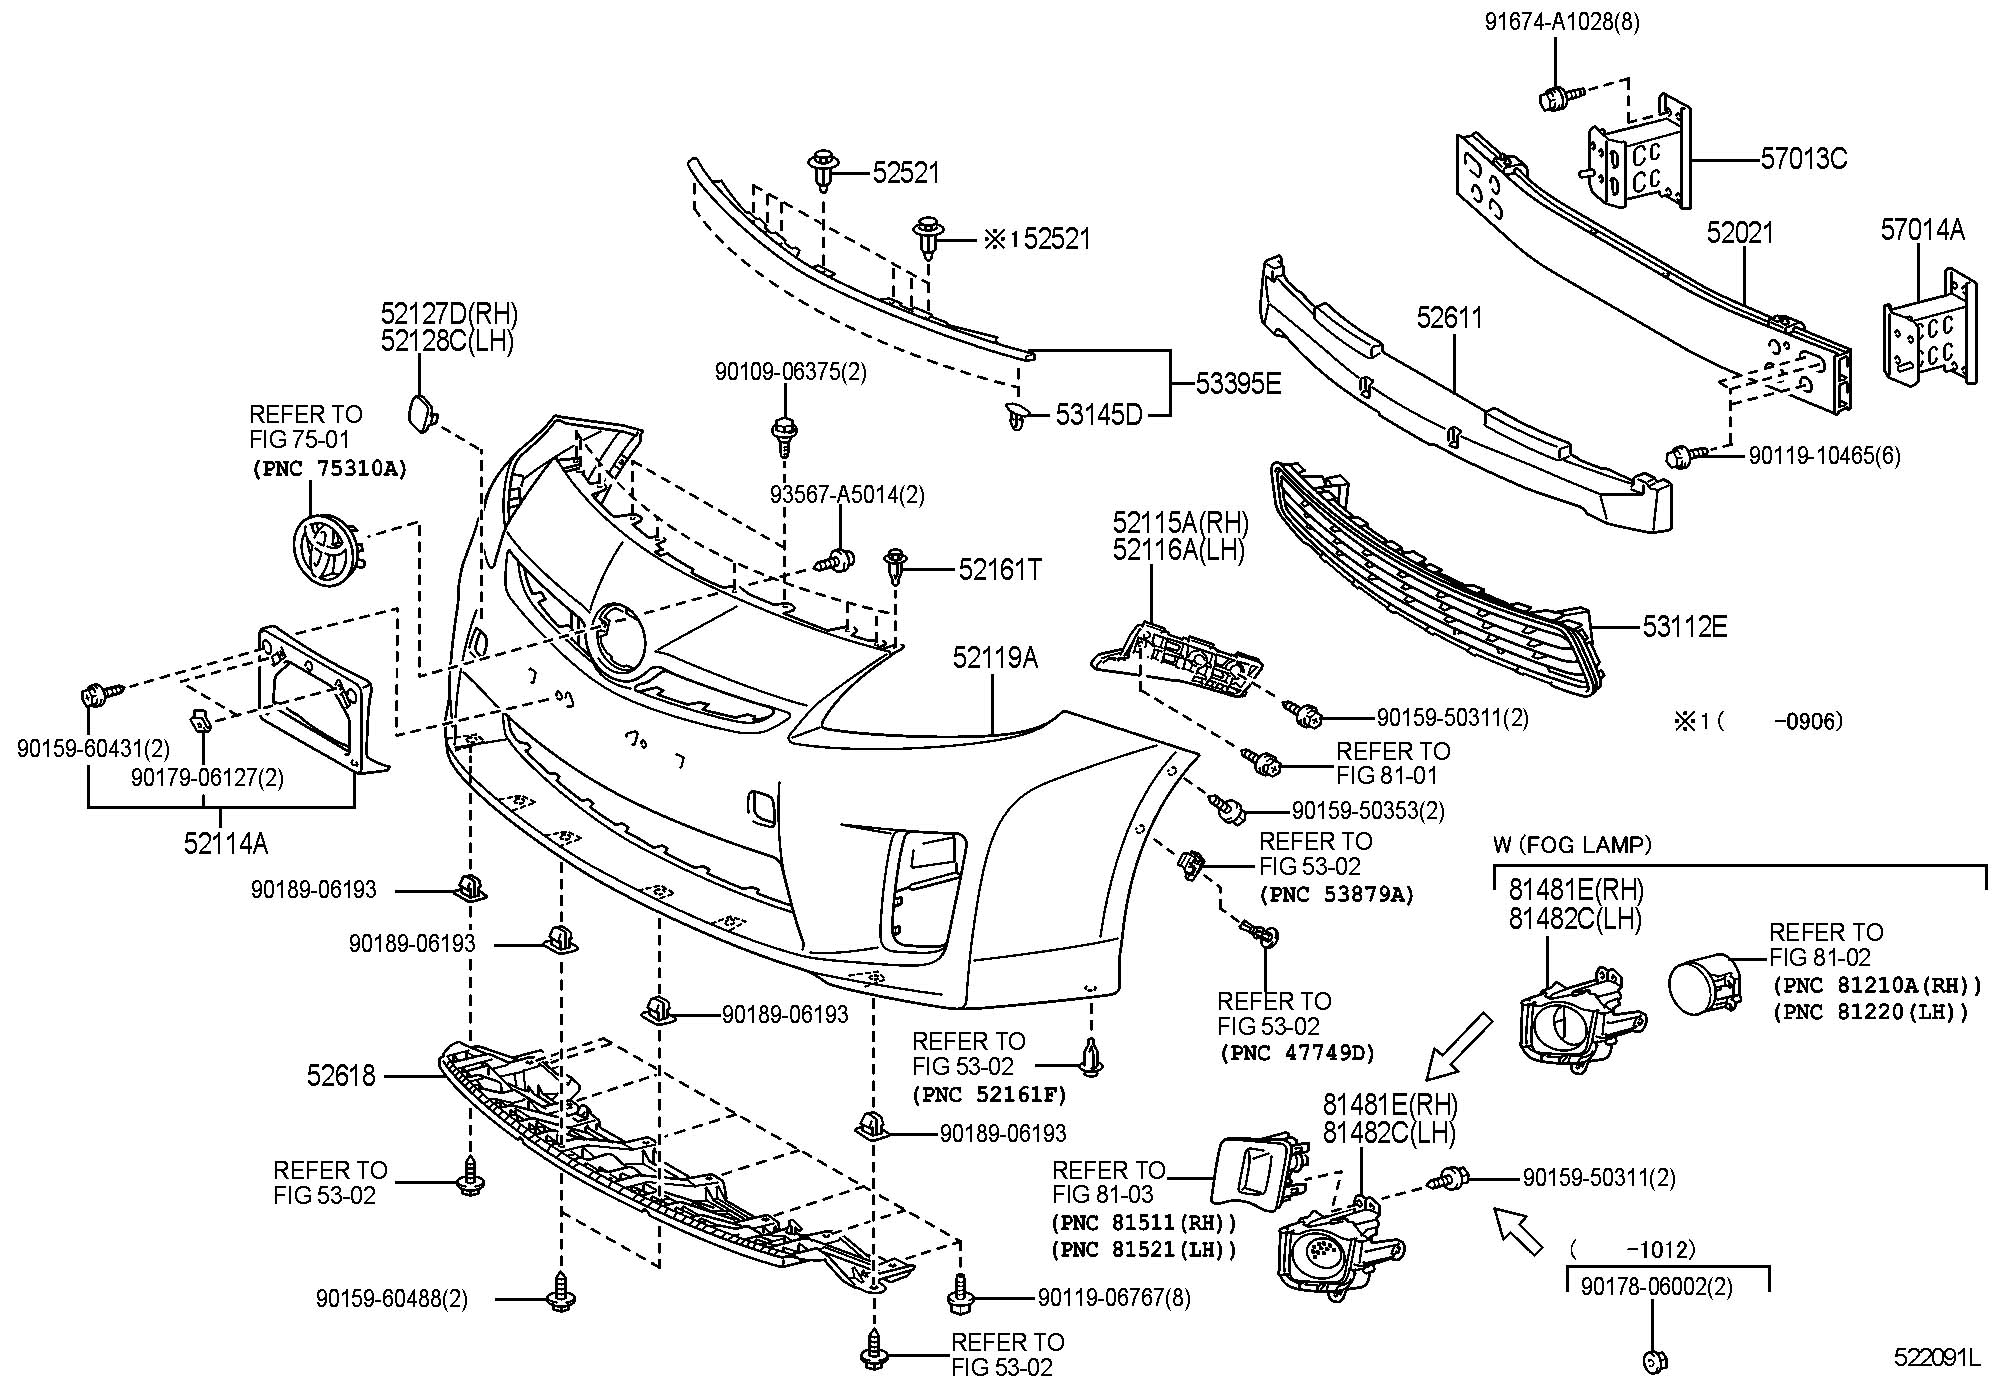 2007 Toyota Tundra Backup Camera Wiring Diagram. Toyota